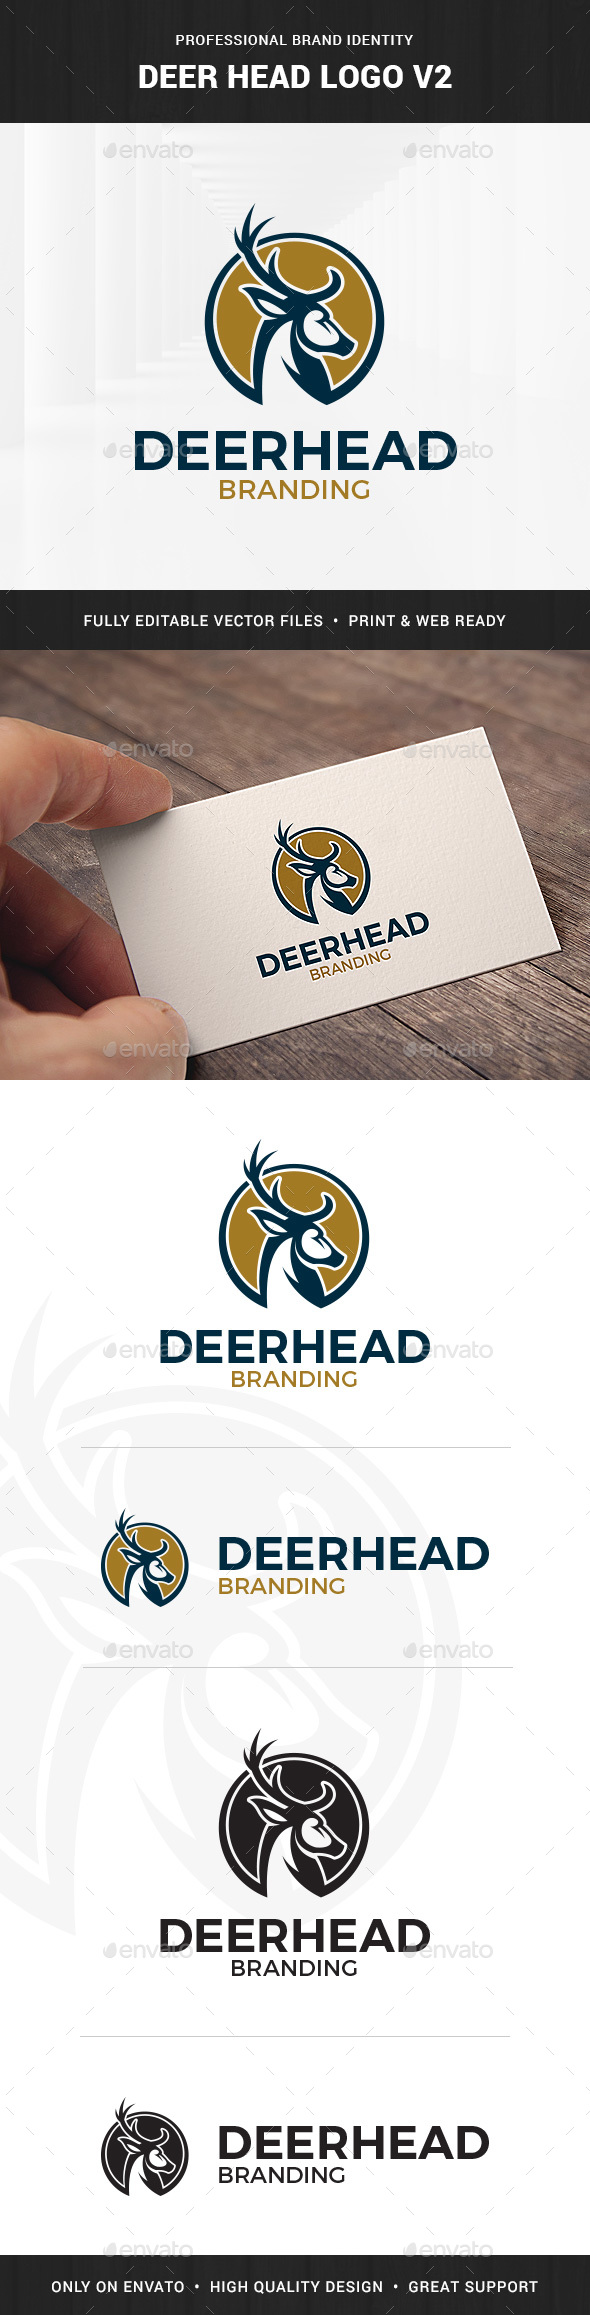 Deer Head Logo Template v2 - Animals Logo Templates